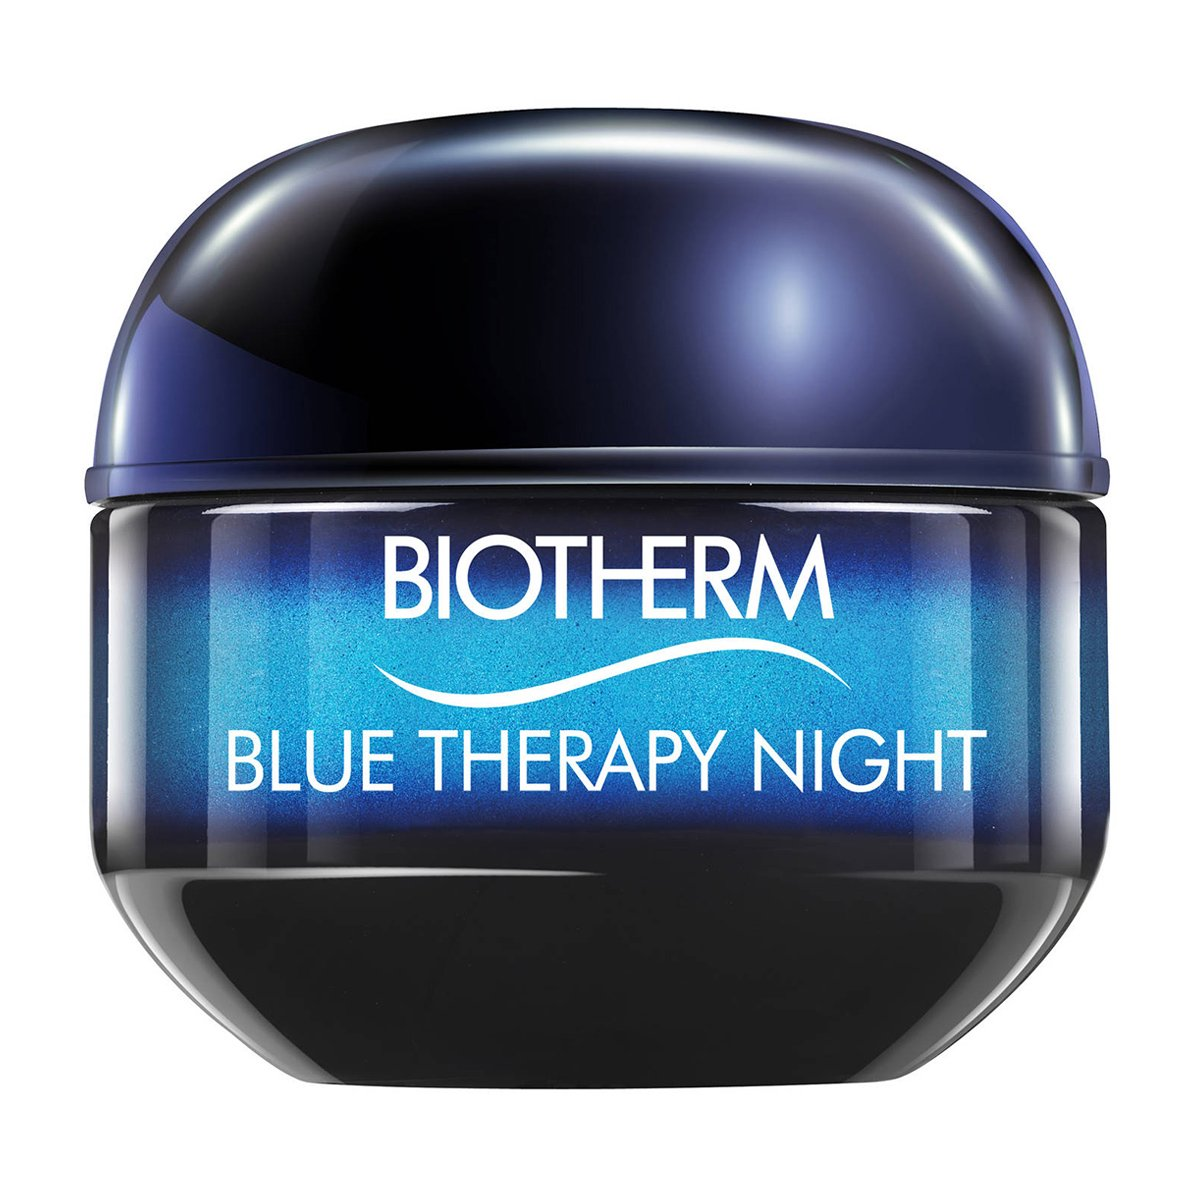 Biotherm - Blue Therapy - Crème Nuit 50 ml